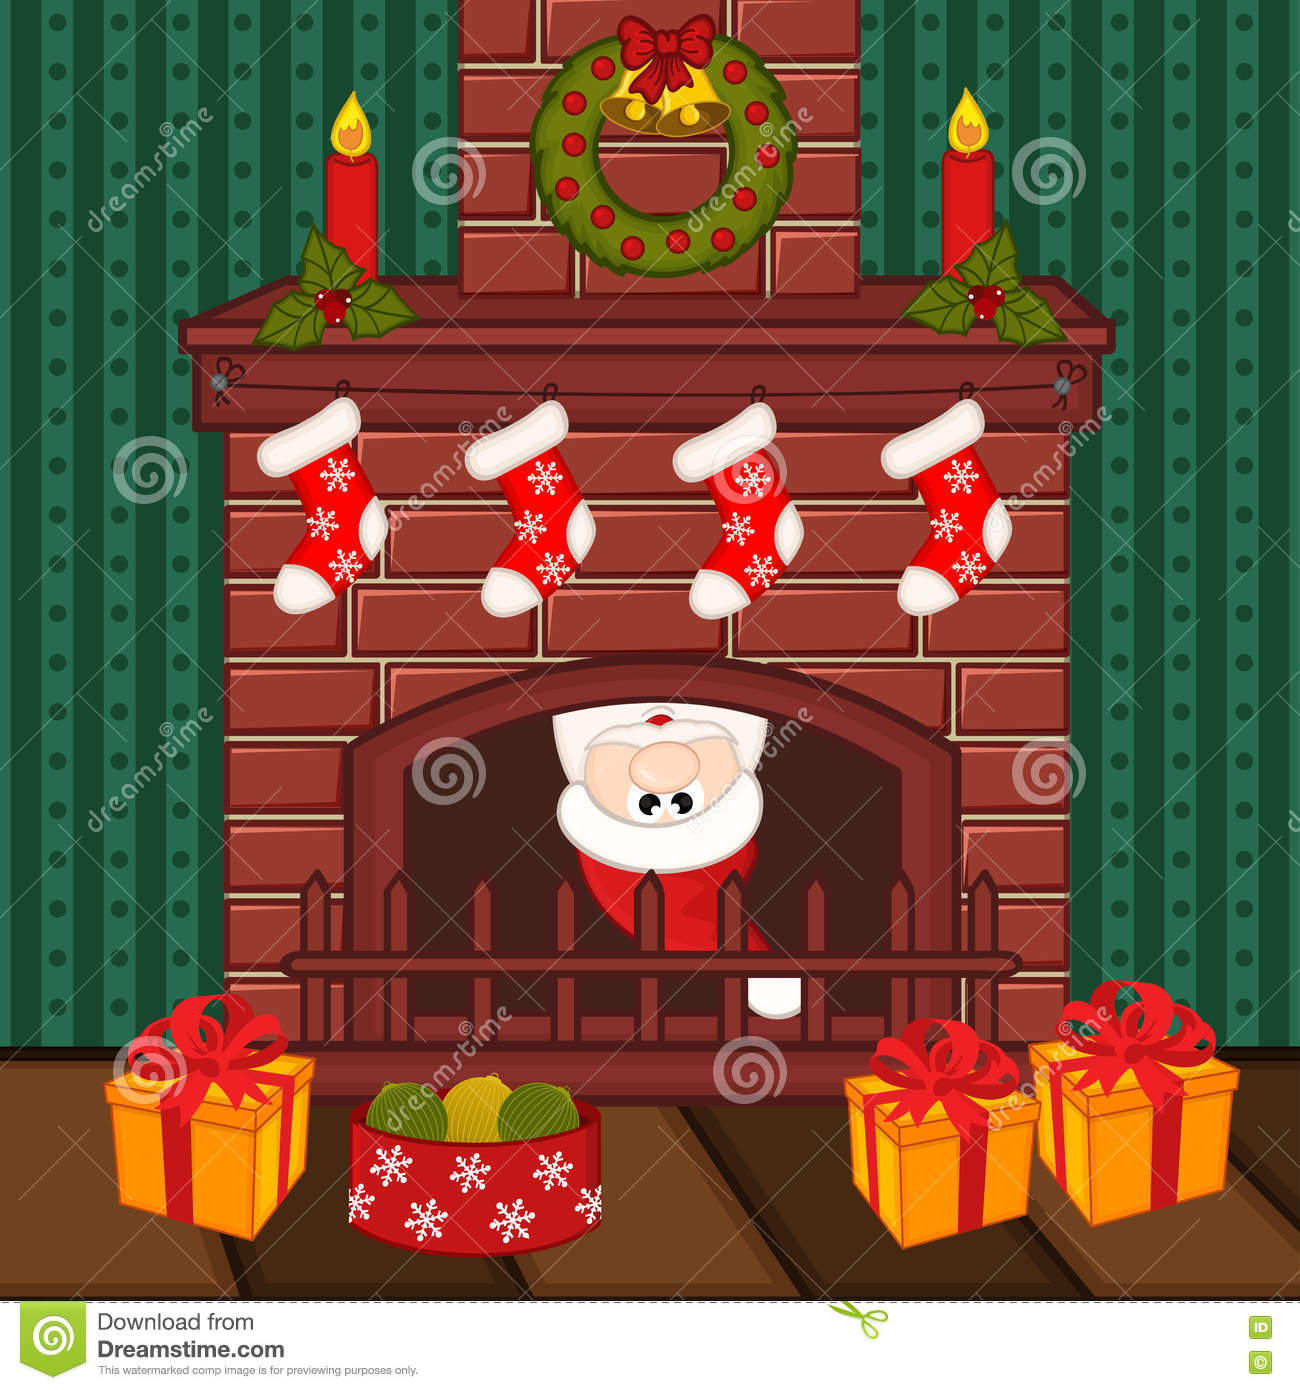 Santa Claus Inside Fireplace Vector Illustration Eps